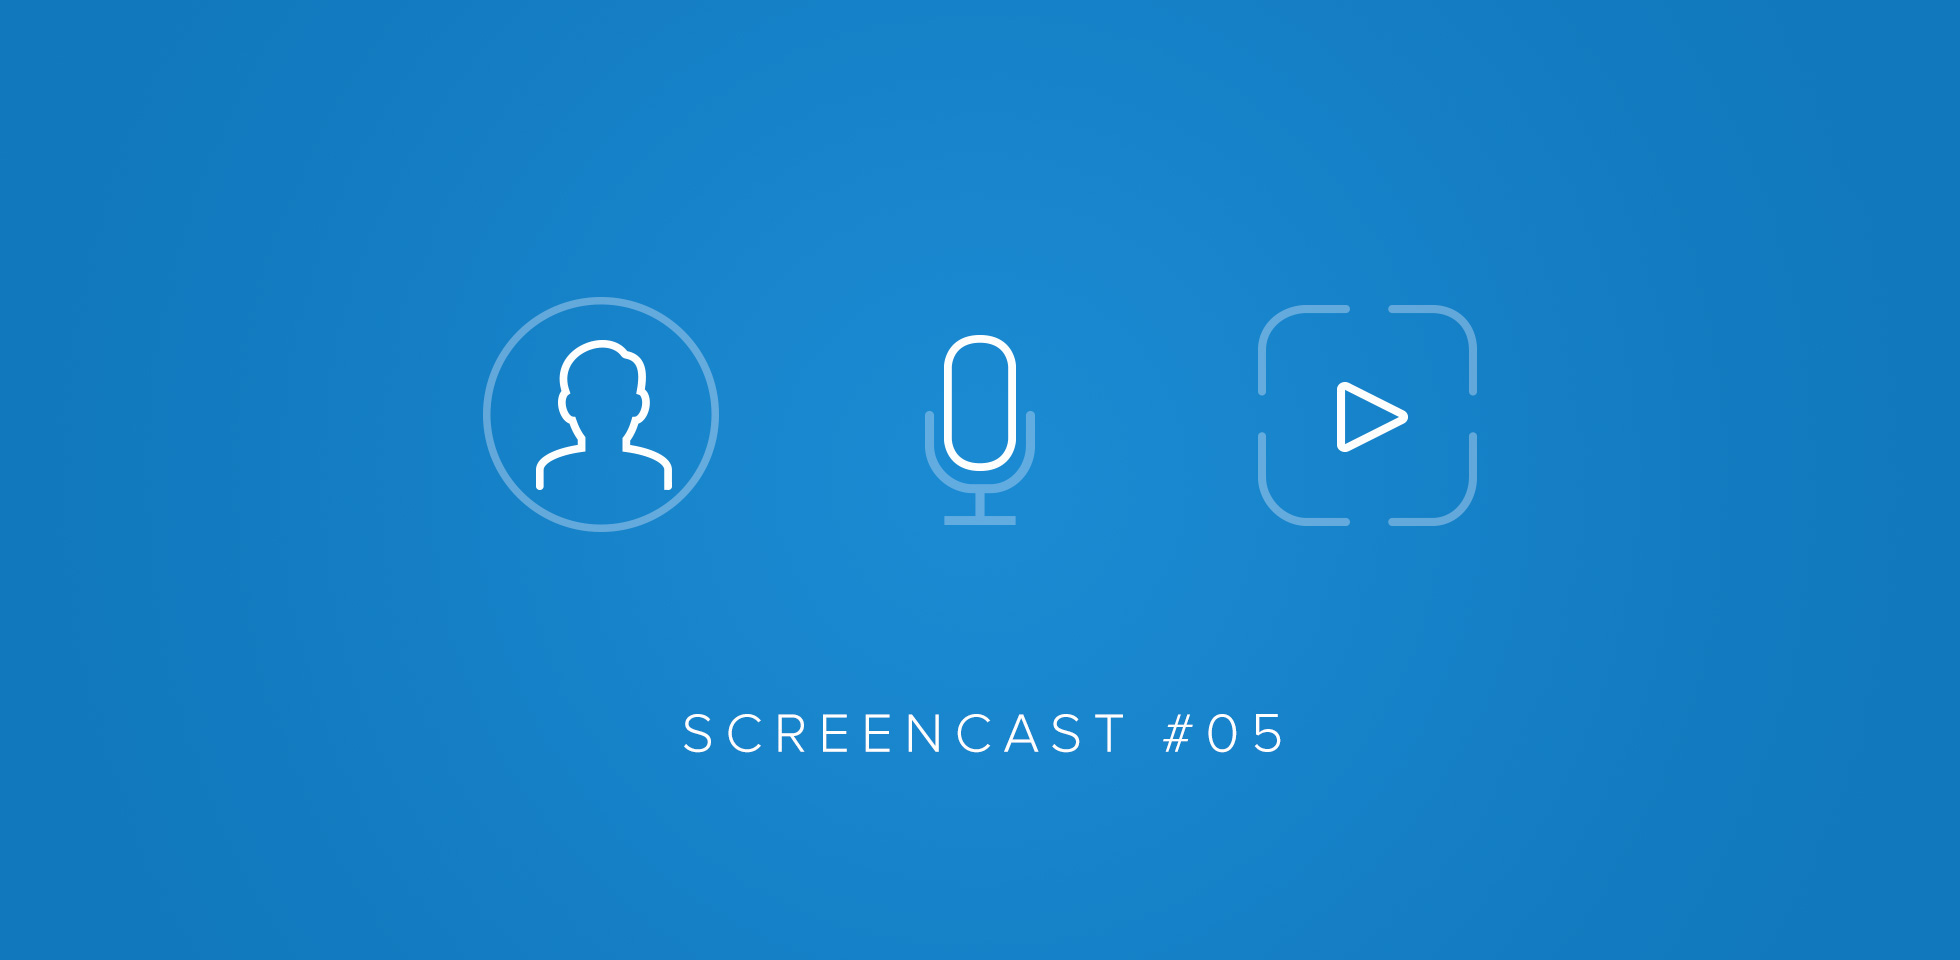 Screencast #05 - Using Vue.js in a Pagekit extension